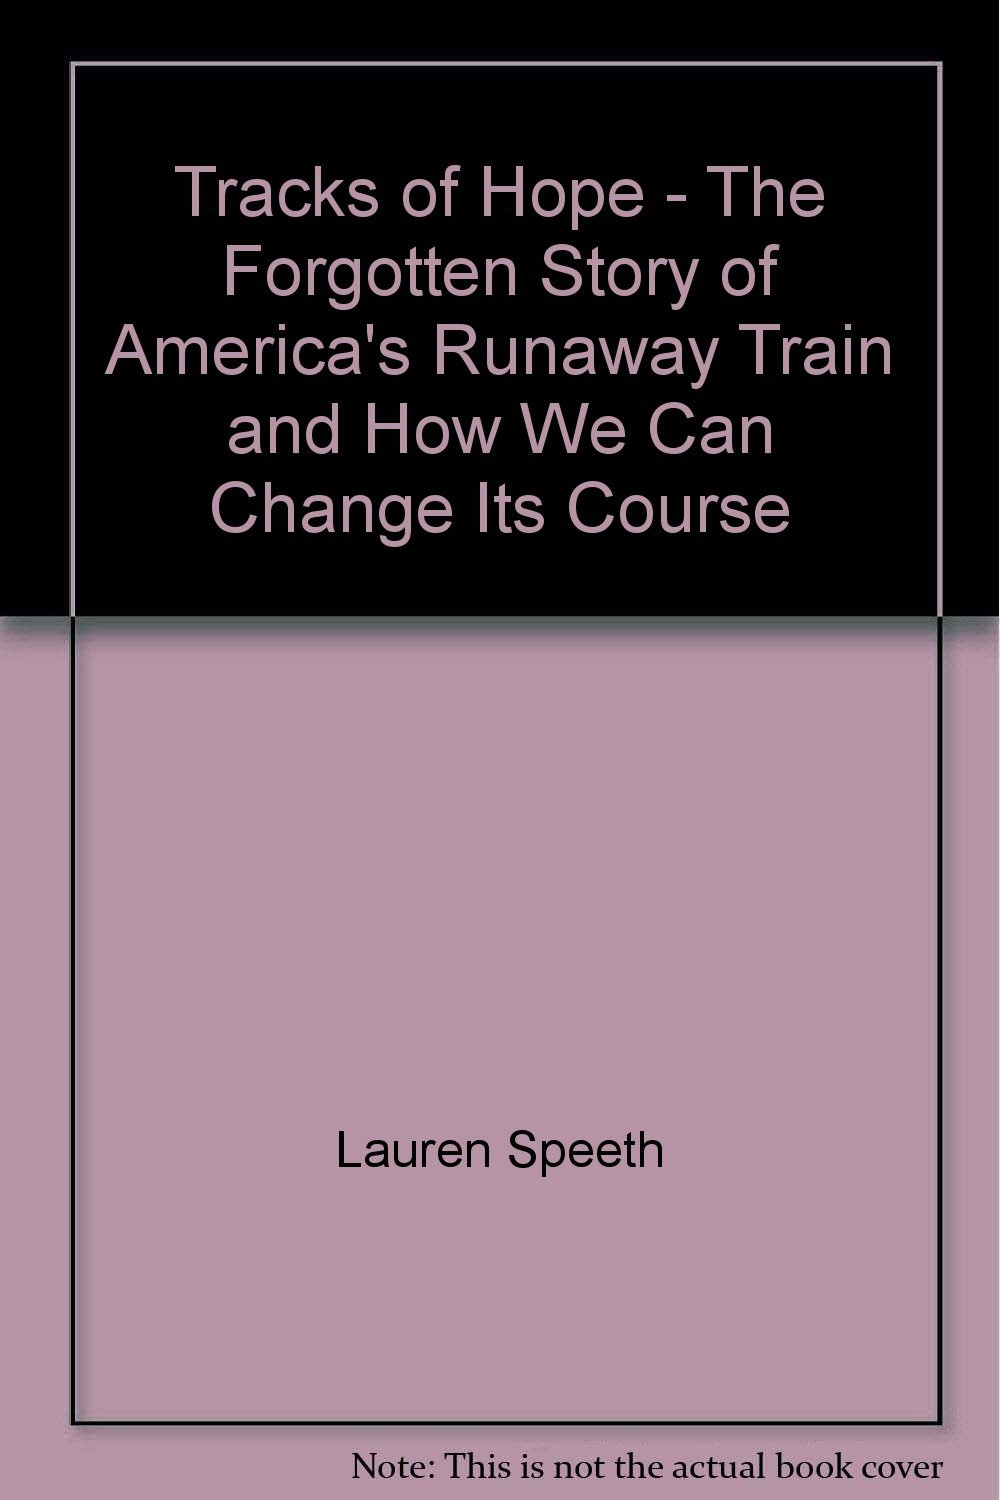 Download Tracks of Hope - The Forgotten Story of America's Runaway Train and How We Can Change Its Course pdf